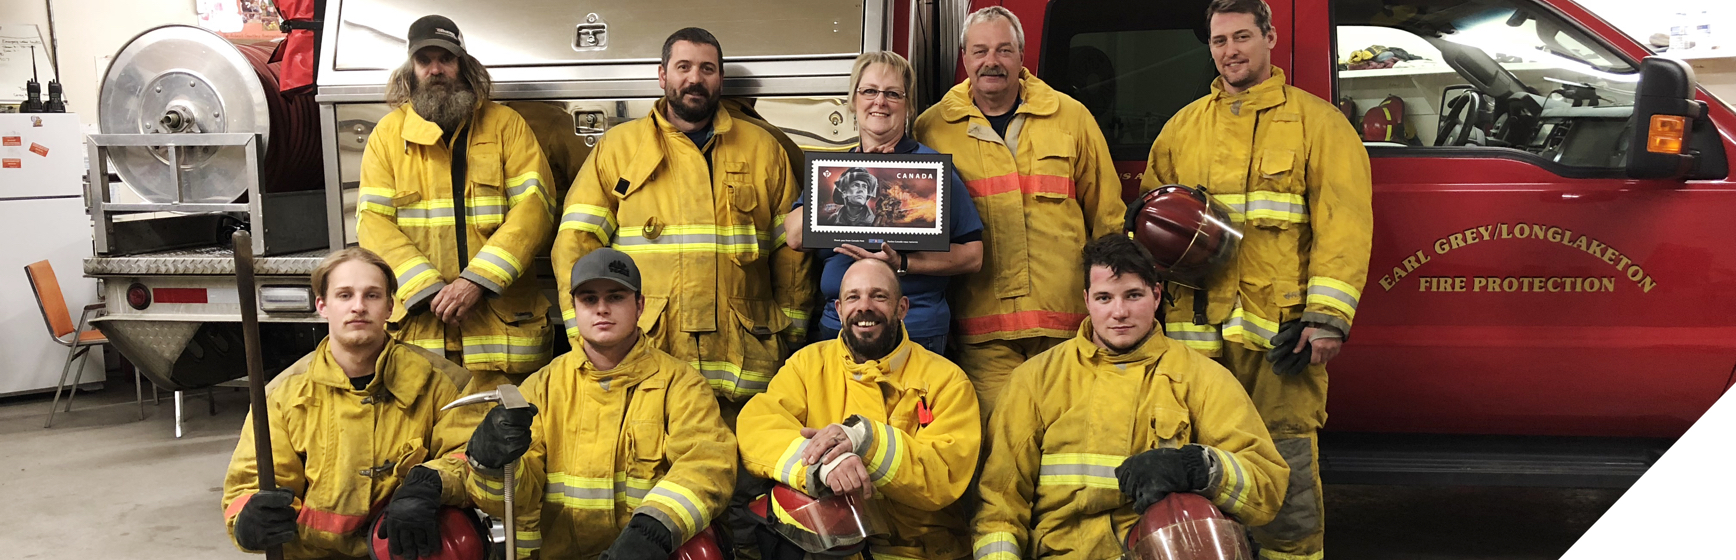 Firefighters in Earl Grey, Sask. receive commemorative plaque of the Emergency Responders stamp honouring firefighters.